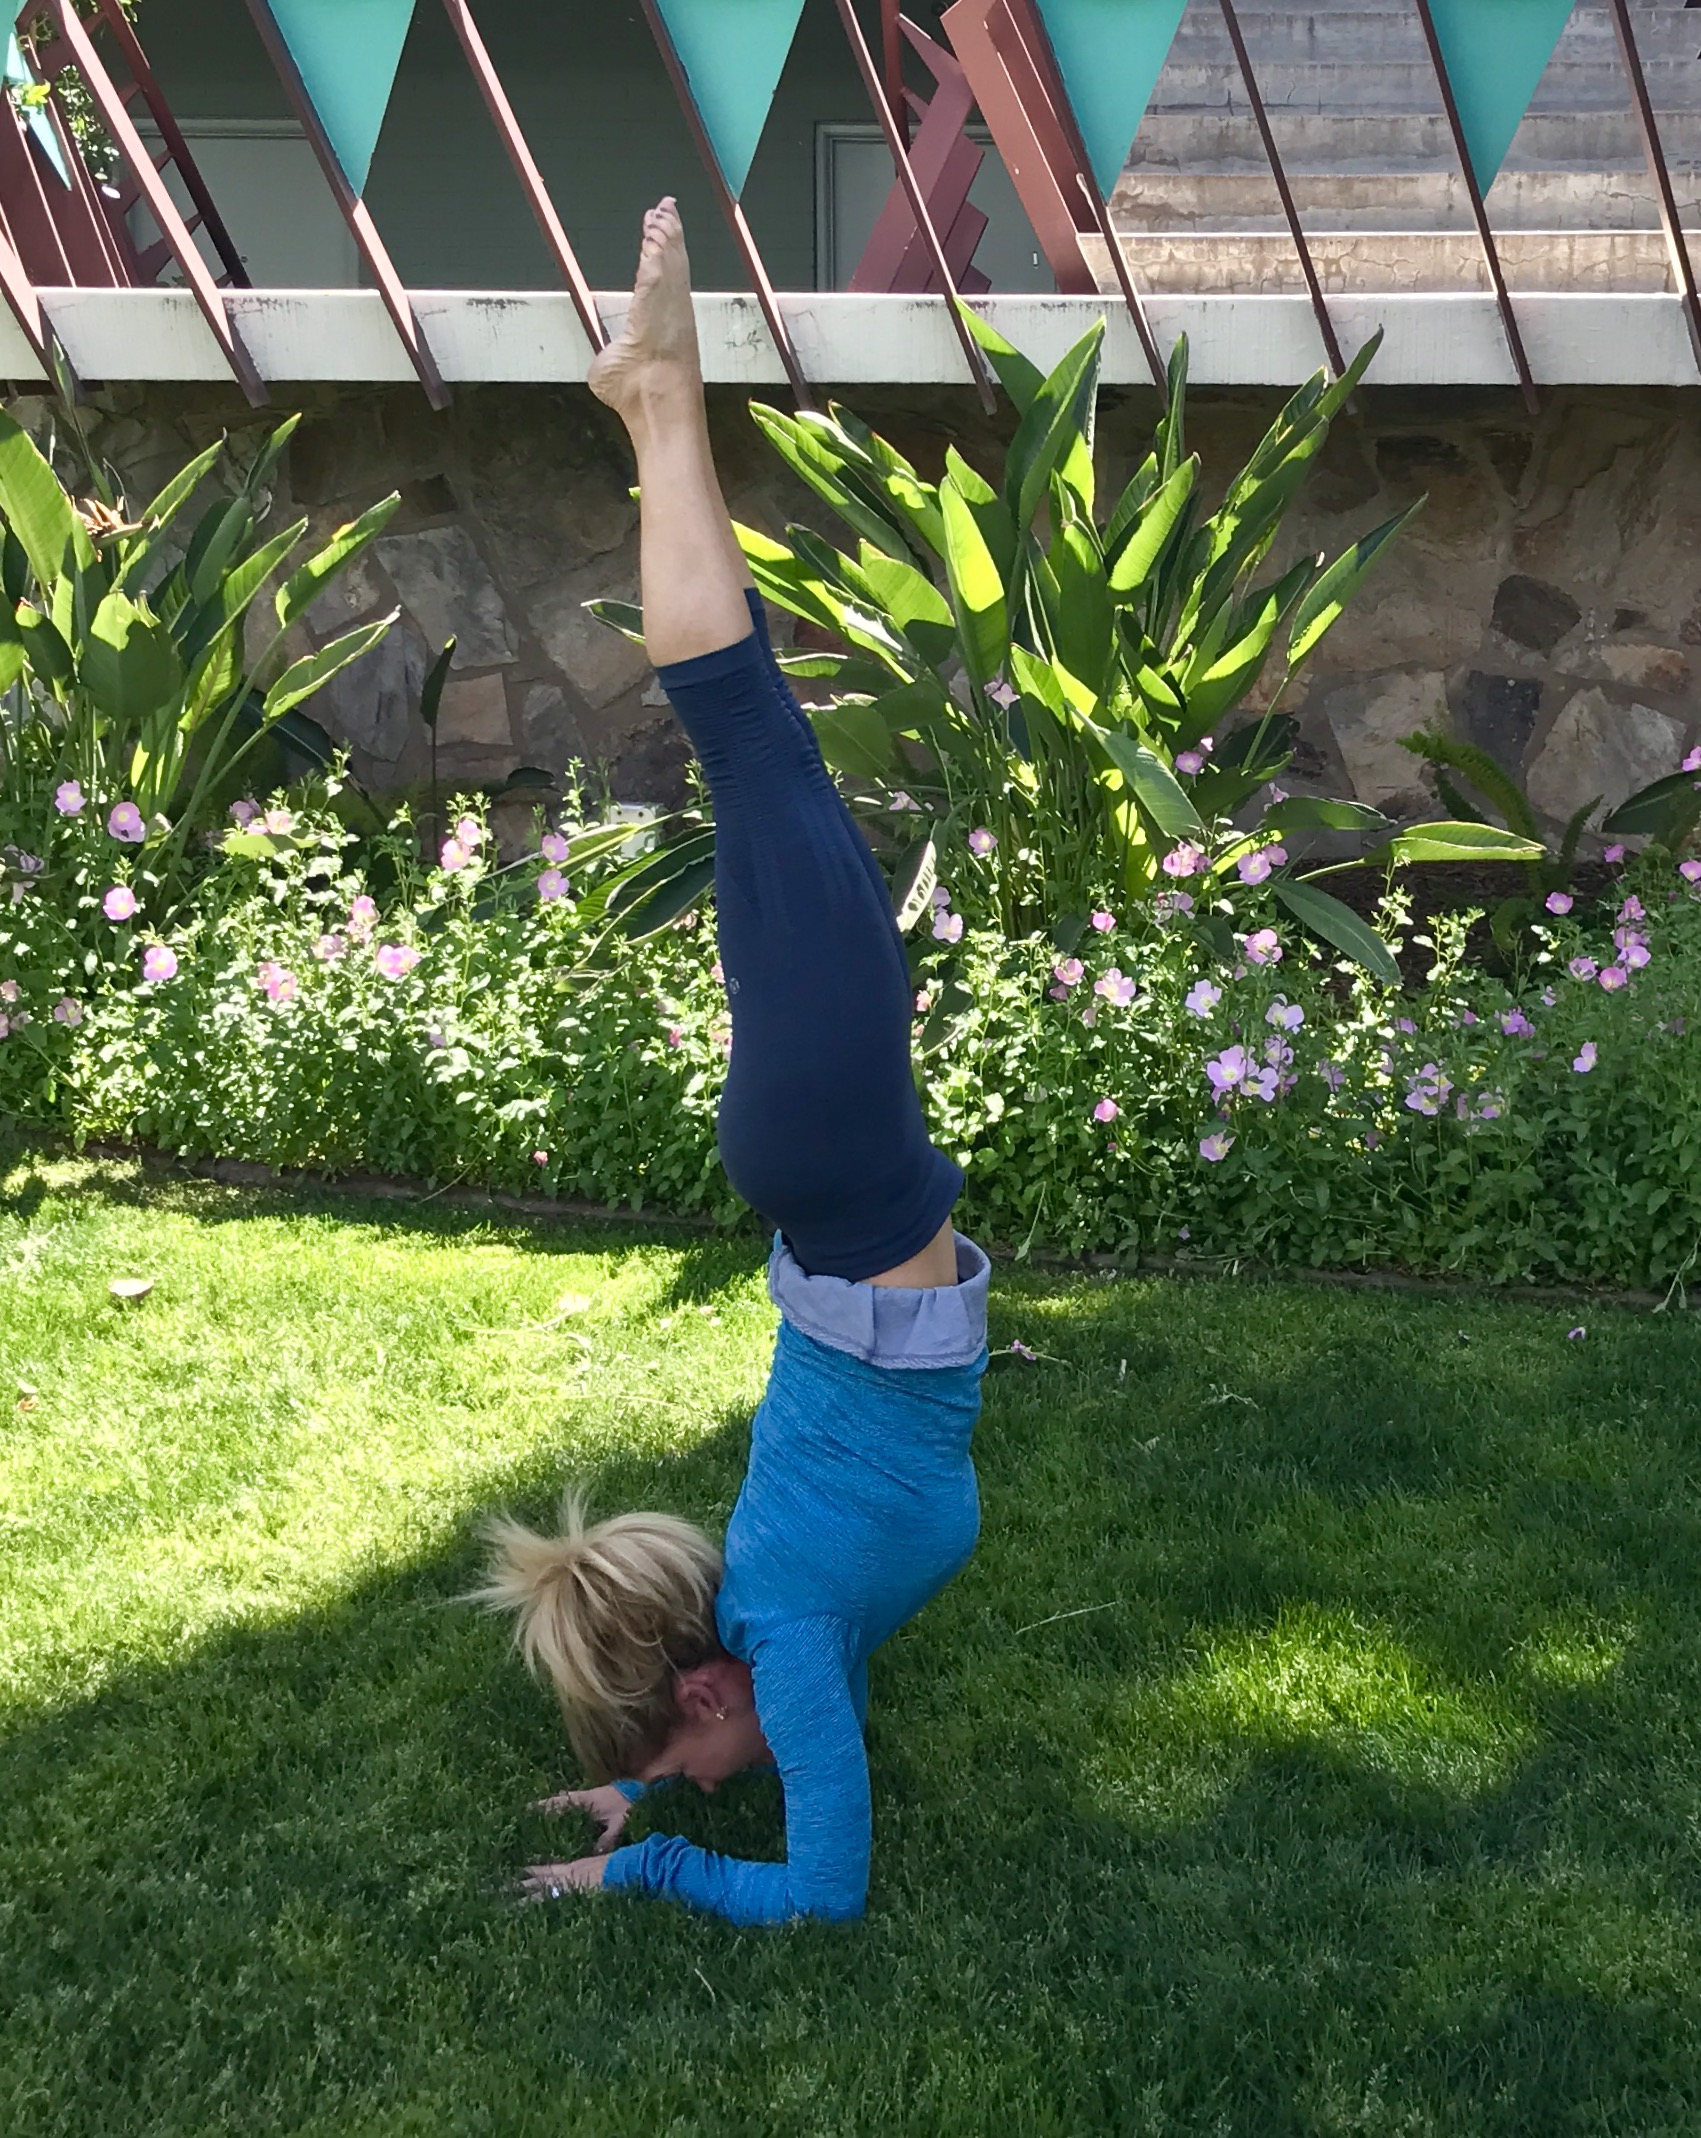 Leigh is an avid yogi, so even while in Phoenix March 3 to root for the UNC Tar Heels' victory in the NCAA Championship, she took an outdoor yoga class before the game.